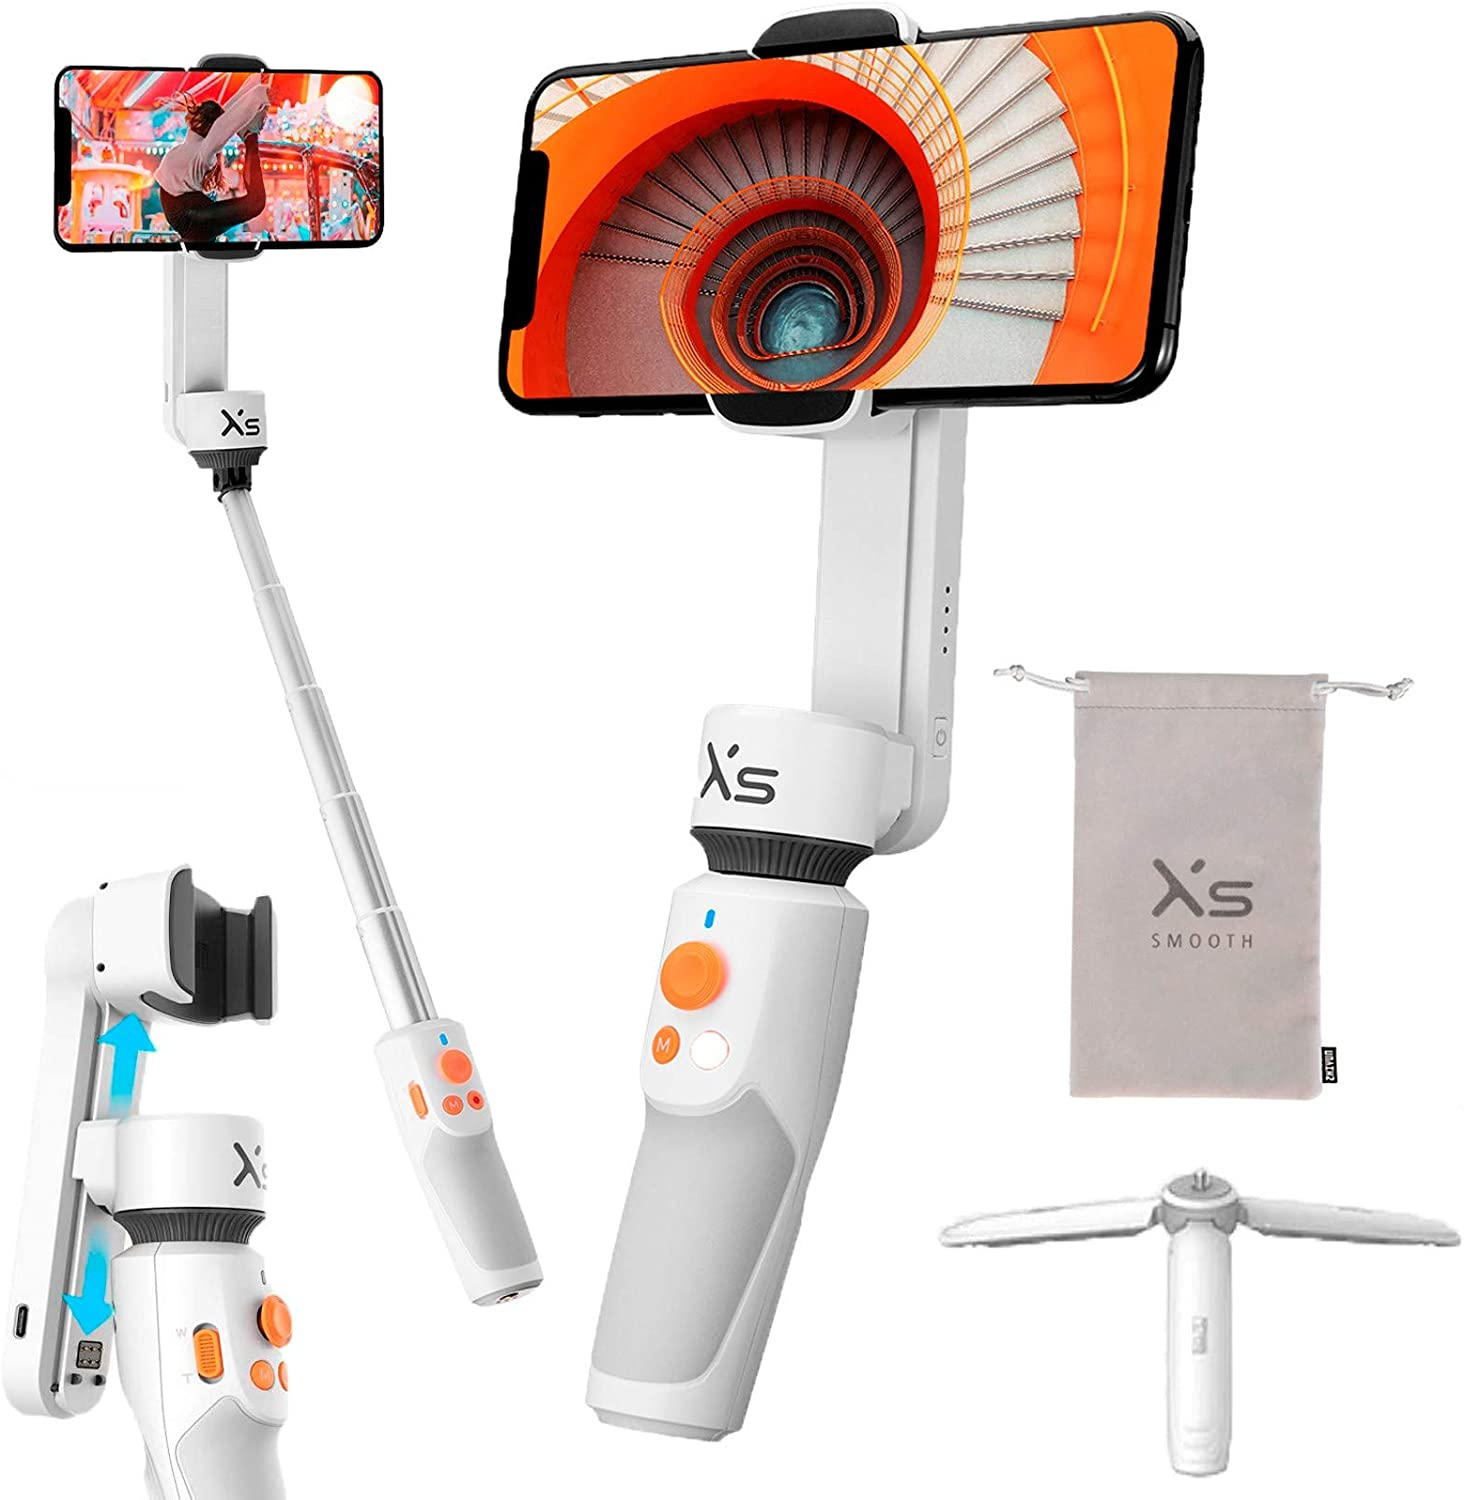 ZHIYUN Smooth XS Handheld Gimbal Stabilizer for iPhone Android Smartphone, Foldable Selfie Stick Tripod with 26cm Extensional Stick, Slide Design, w/Case, Vlog YouTube Live Video Record : Camera & Photo